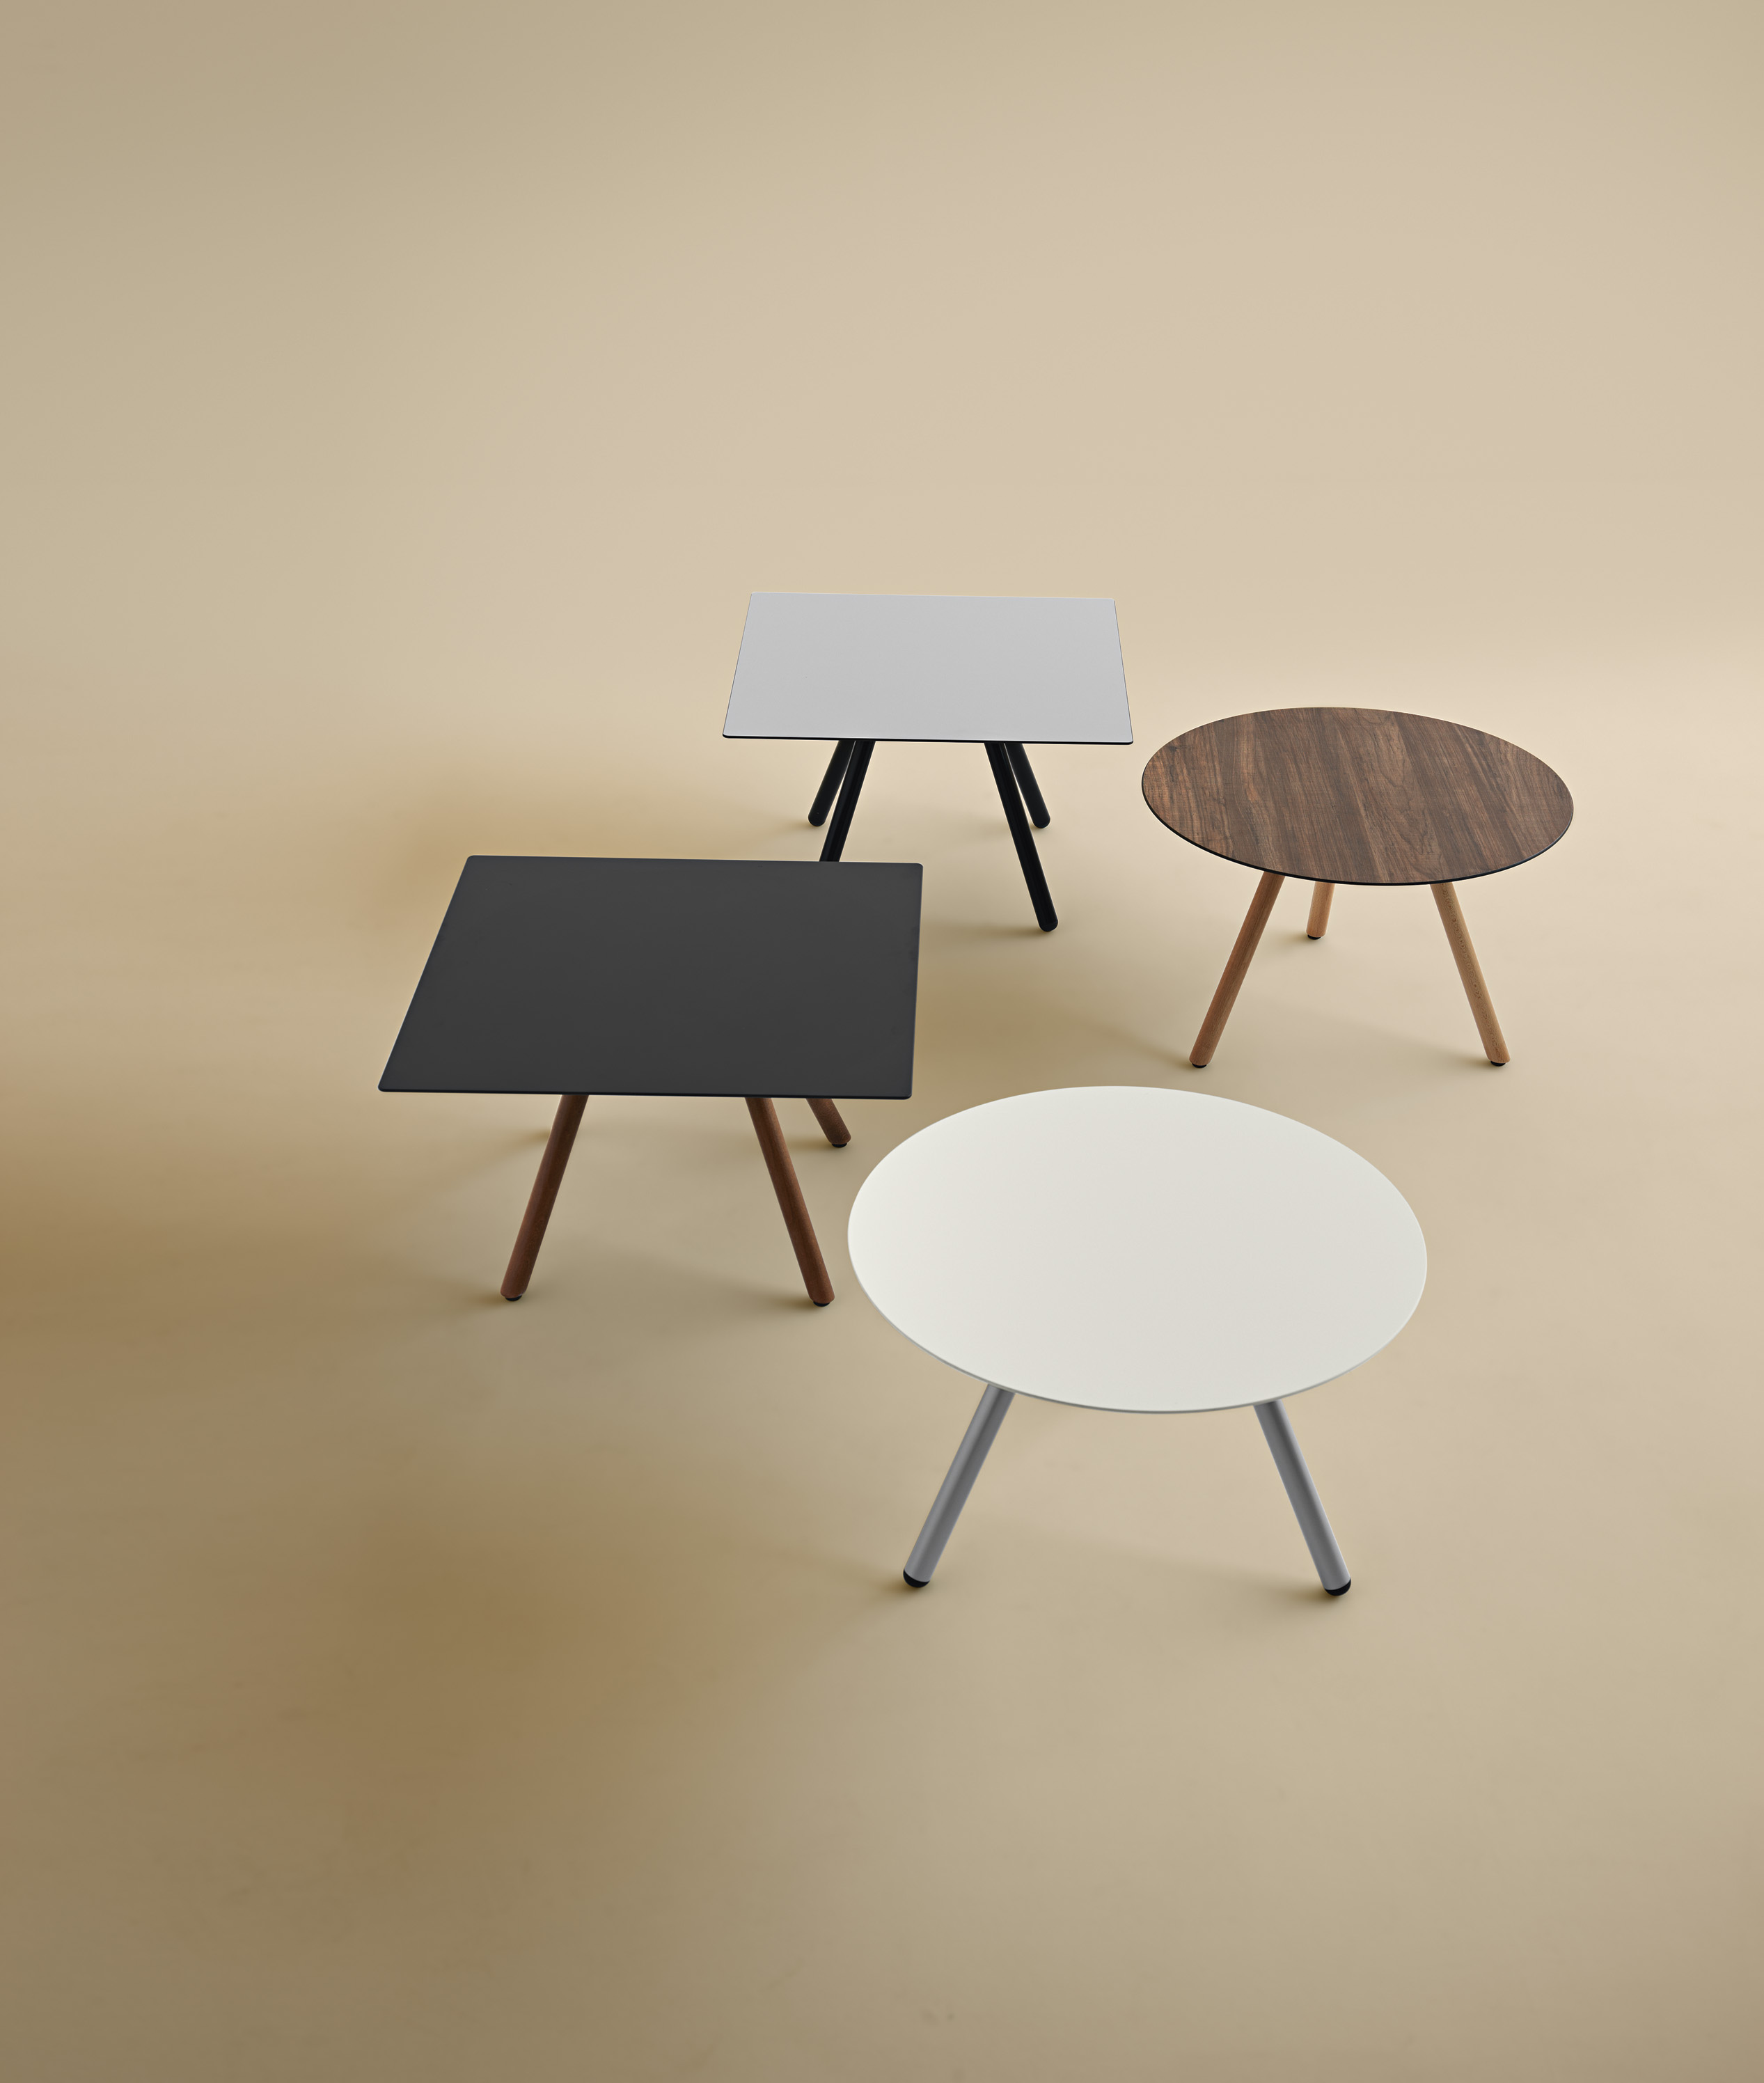 Square Coffee Table Metal Legs: Square Coffee Table With Steel Legs Jet 521Q Jet